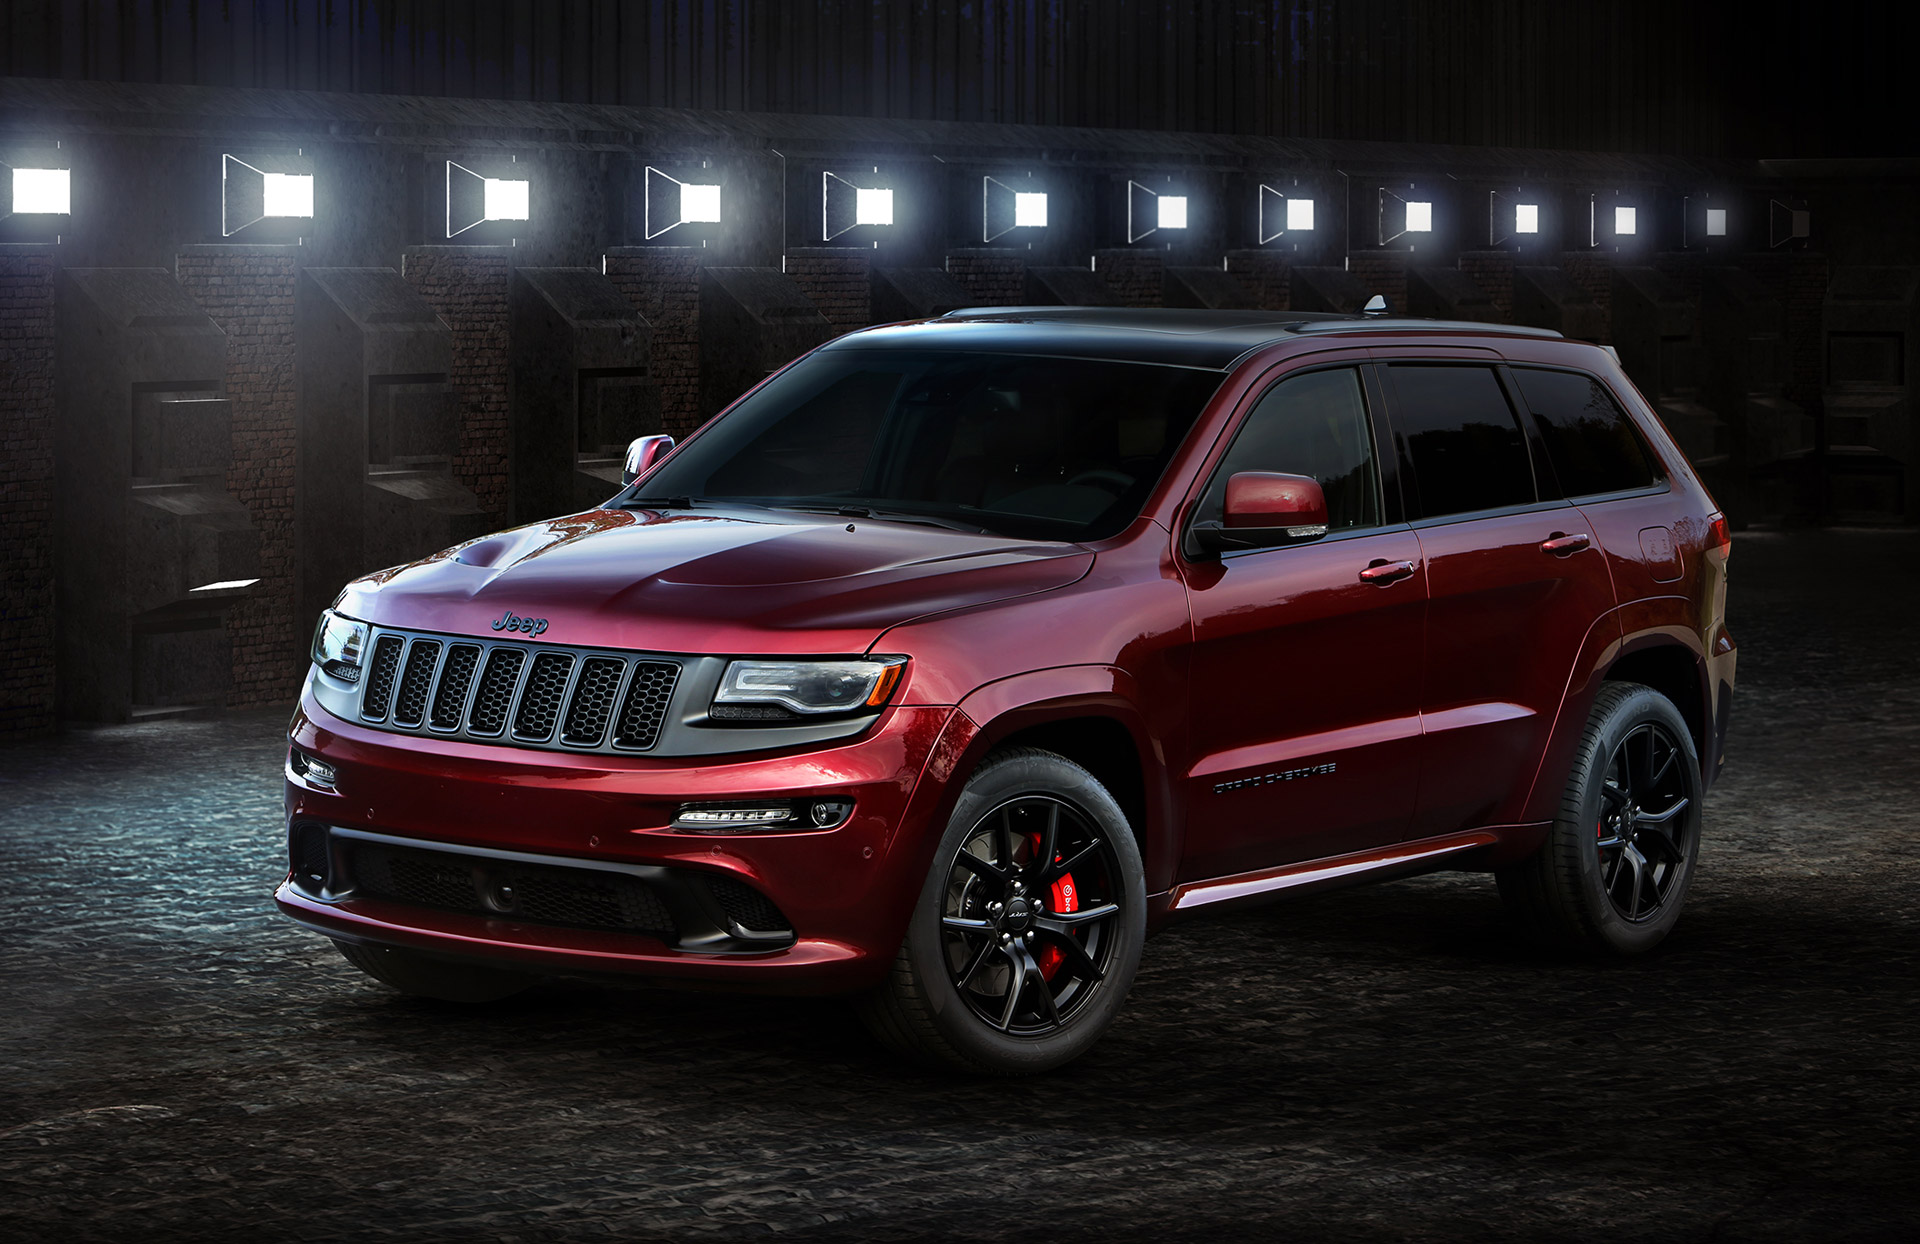 oil reset blog archive 2016 jeep grand cherokee oil change reminder reset. Black Bedroom Furniture Sets. Home Design Ideas